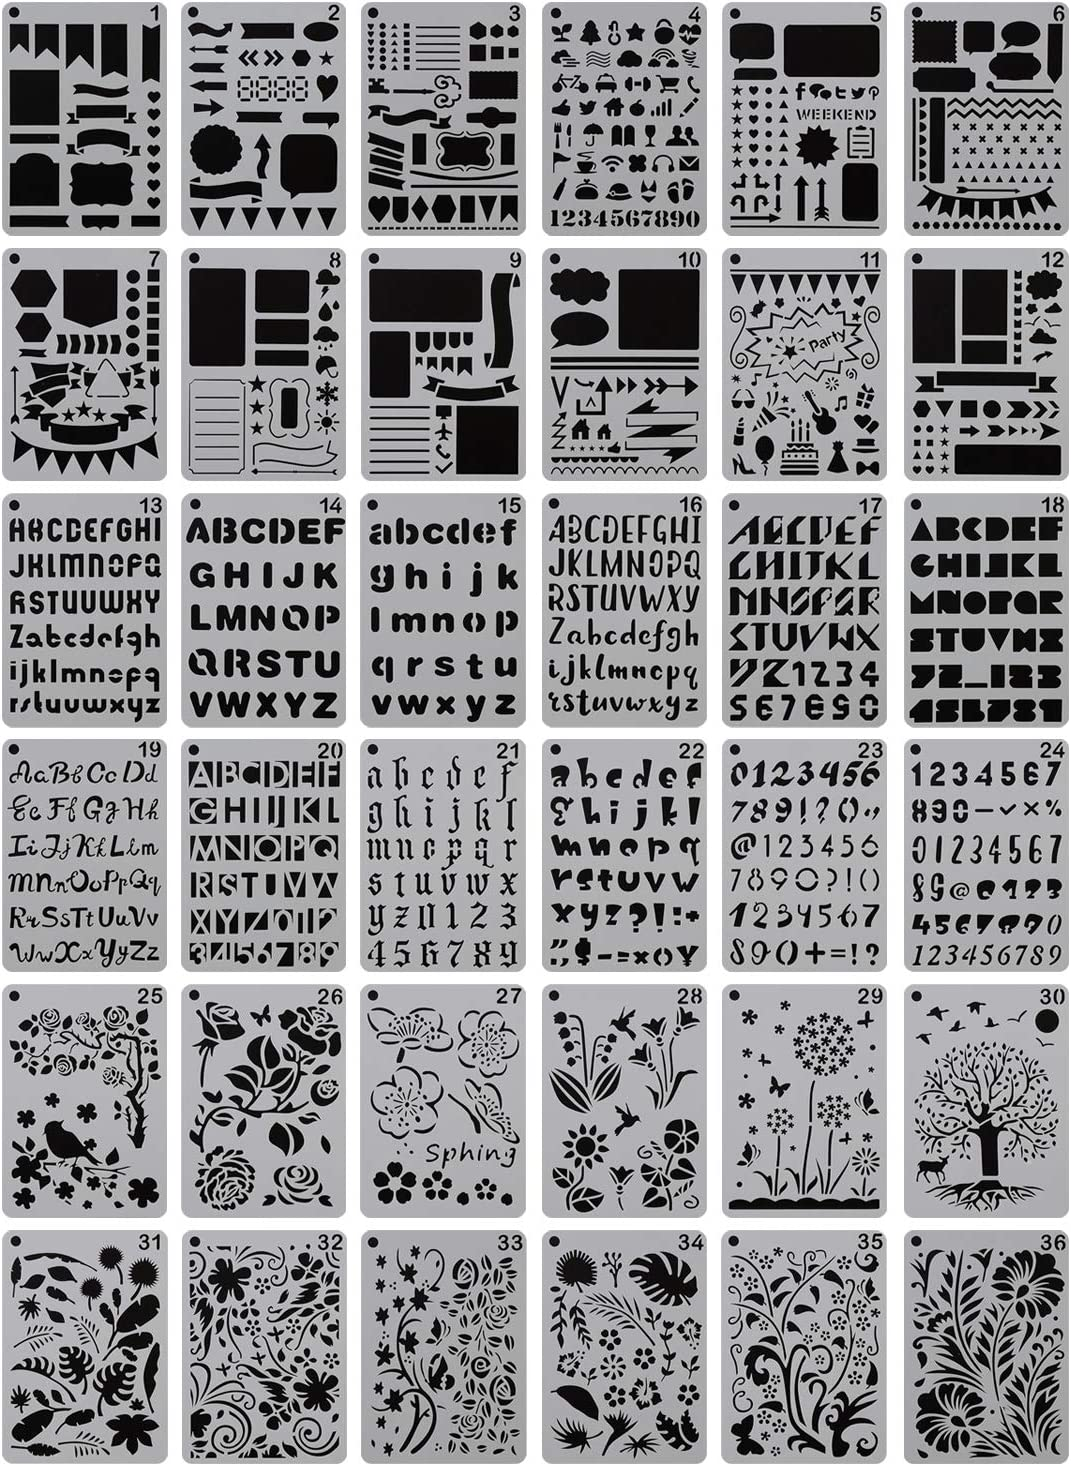 """YUEAON 36-Pack 5"""" x 7"""" Drawing Stencils Floral Letter and Number Template Stencil for A5 Bullet Journal Scrapbooking Notebook Dairy Planner Craft"""